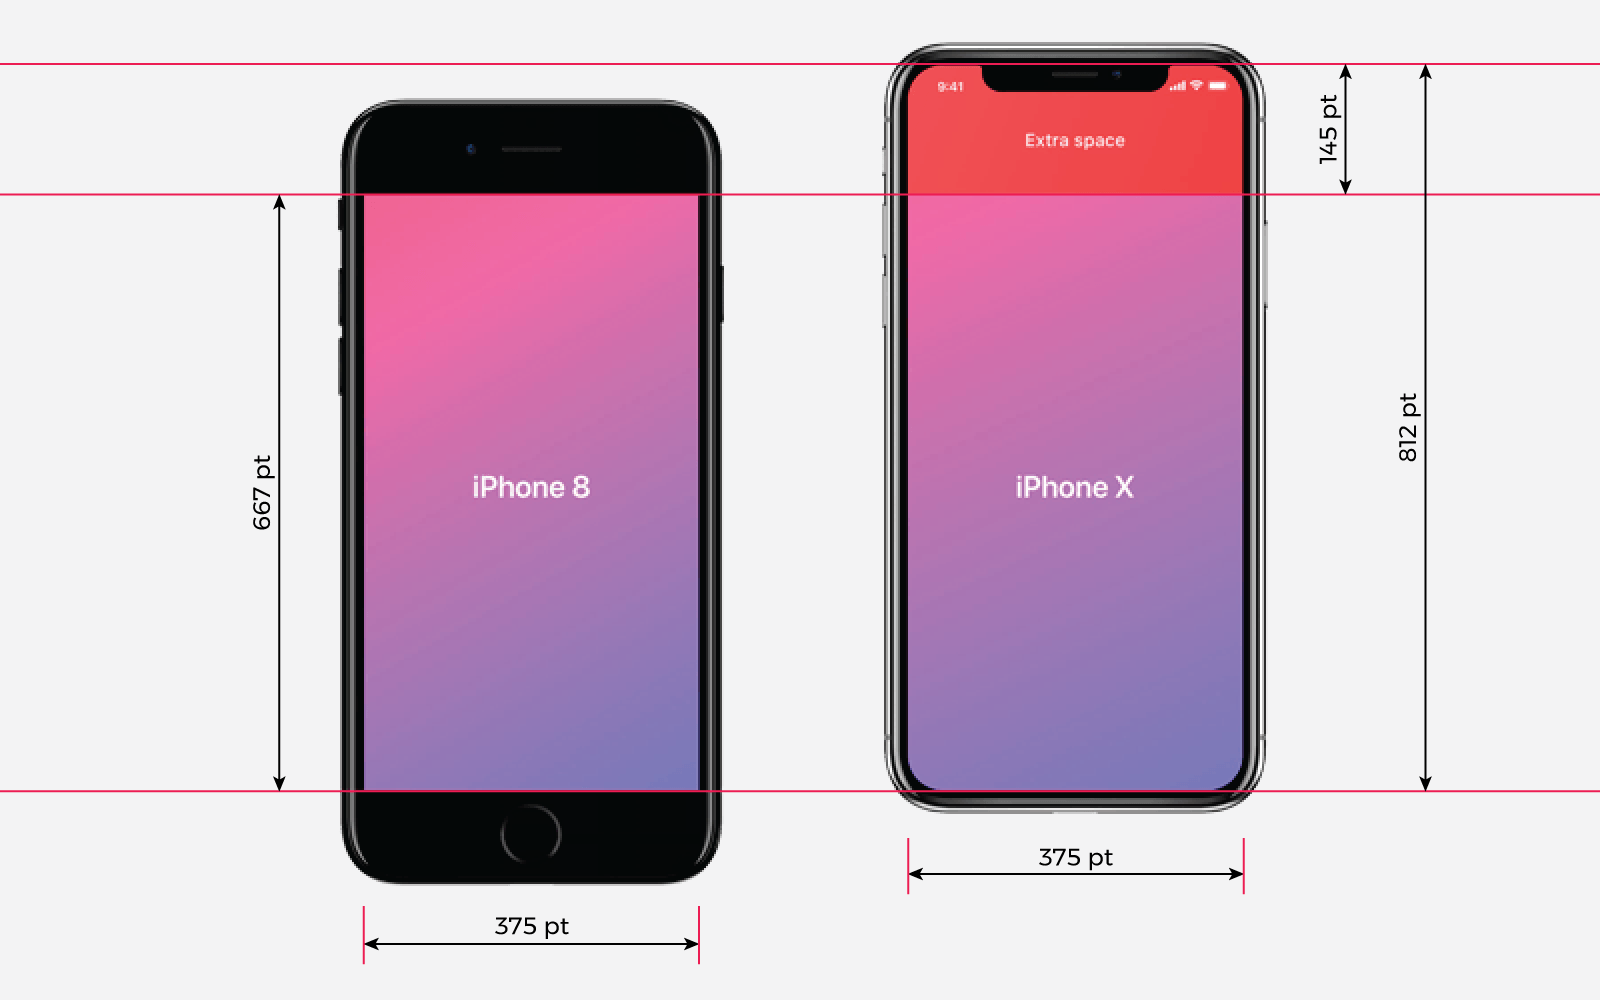 iphone screen dimensions designing for iphone x 9 ways to make your app look neat 12275